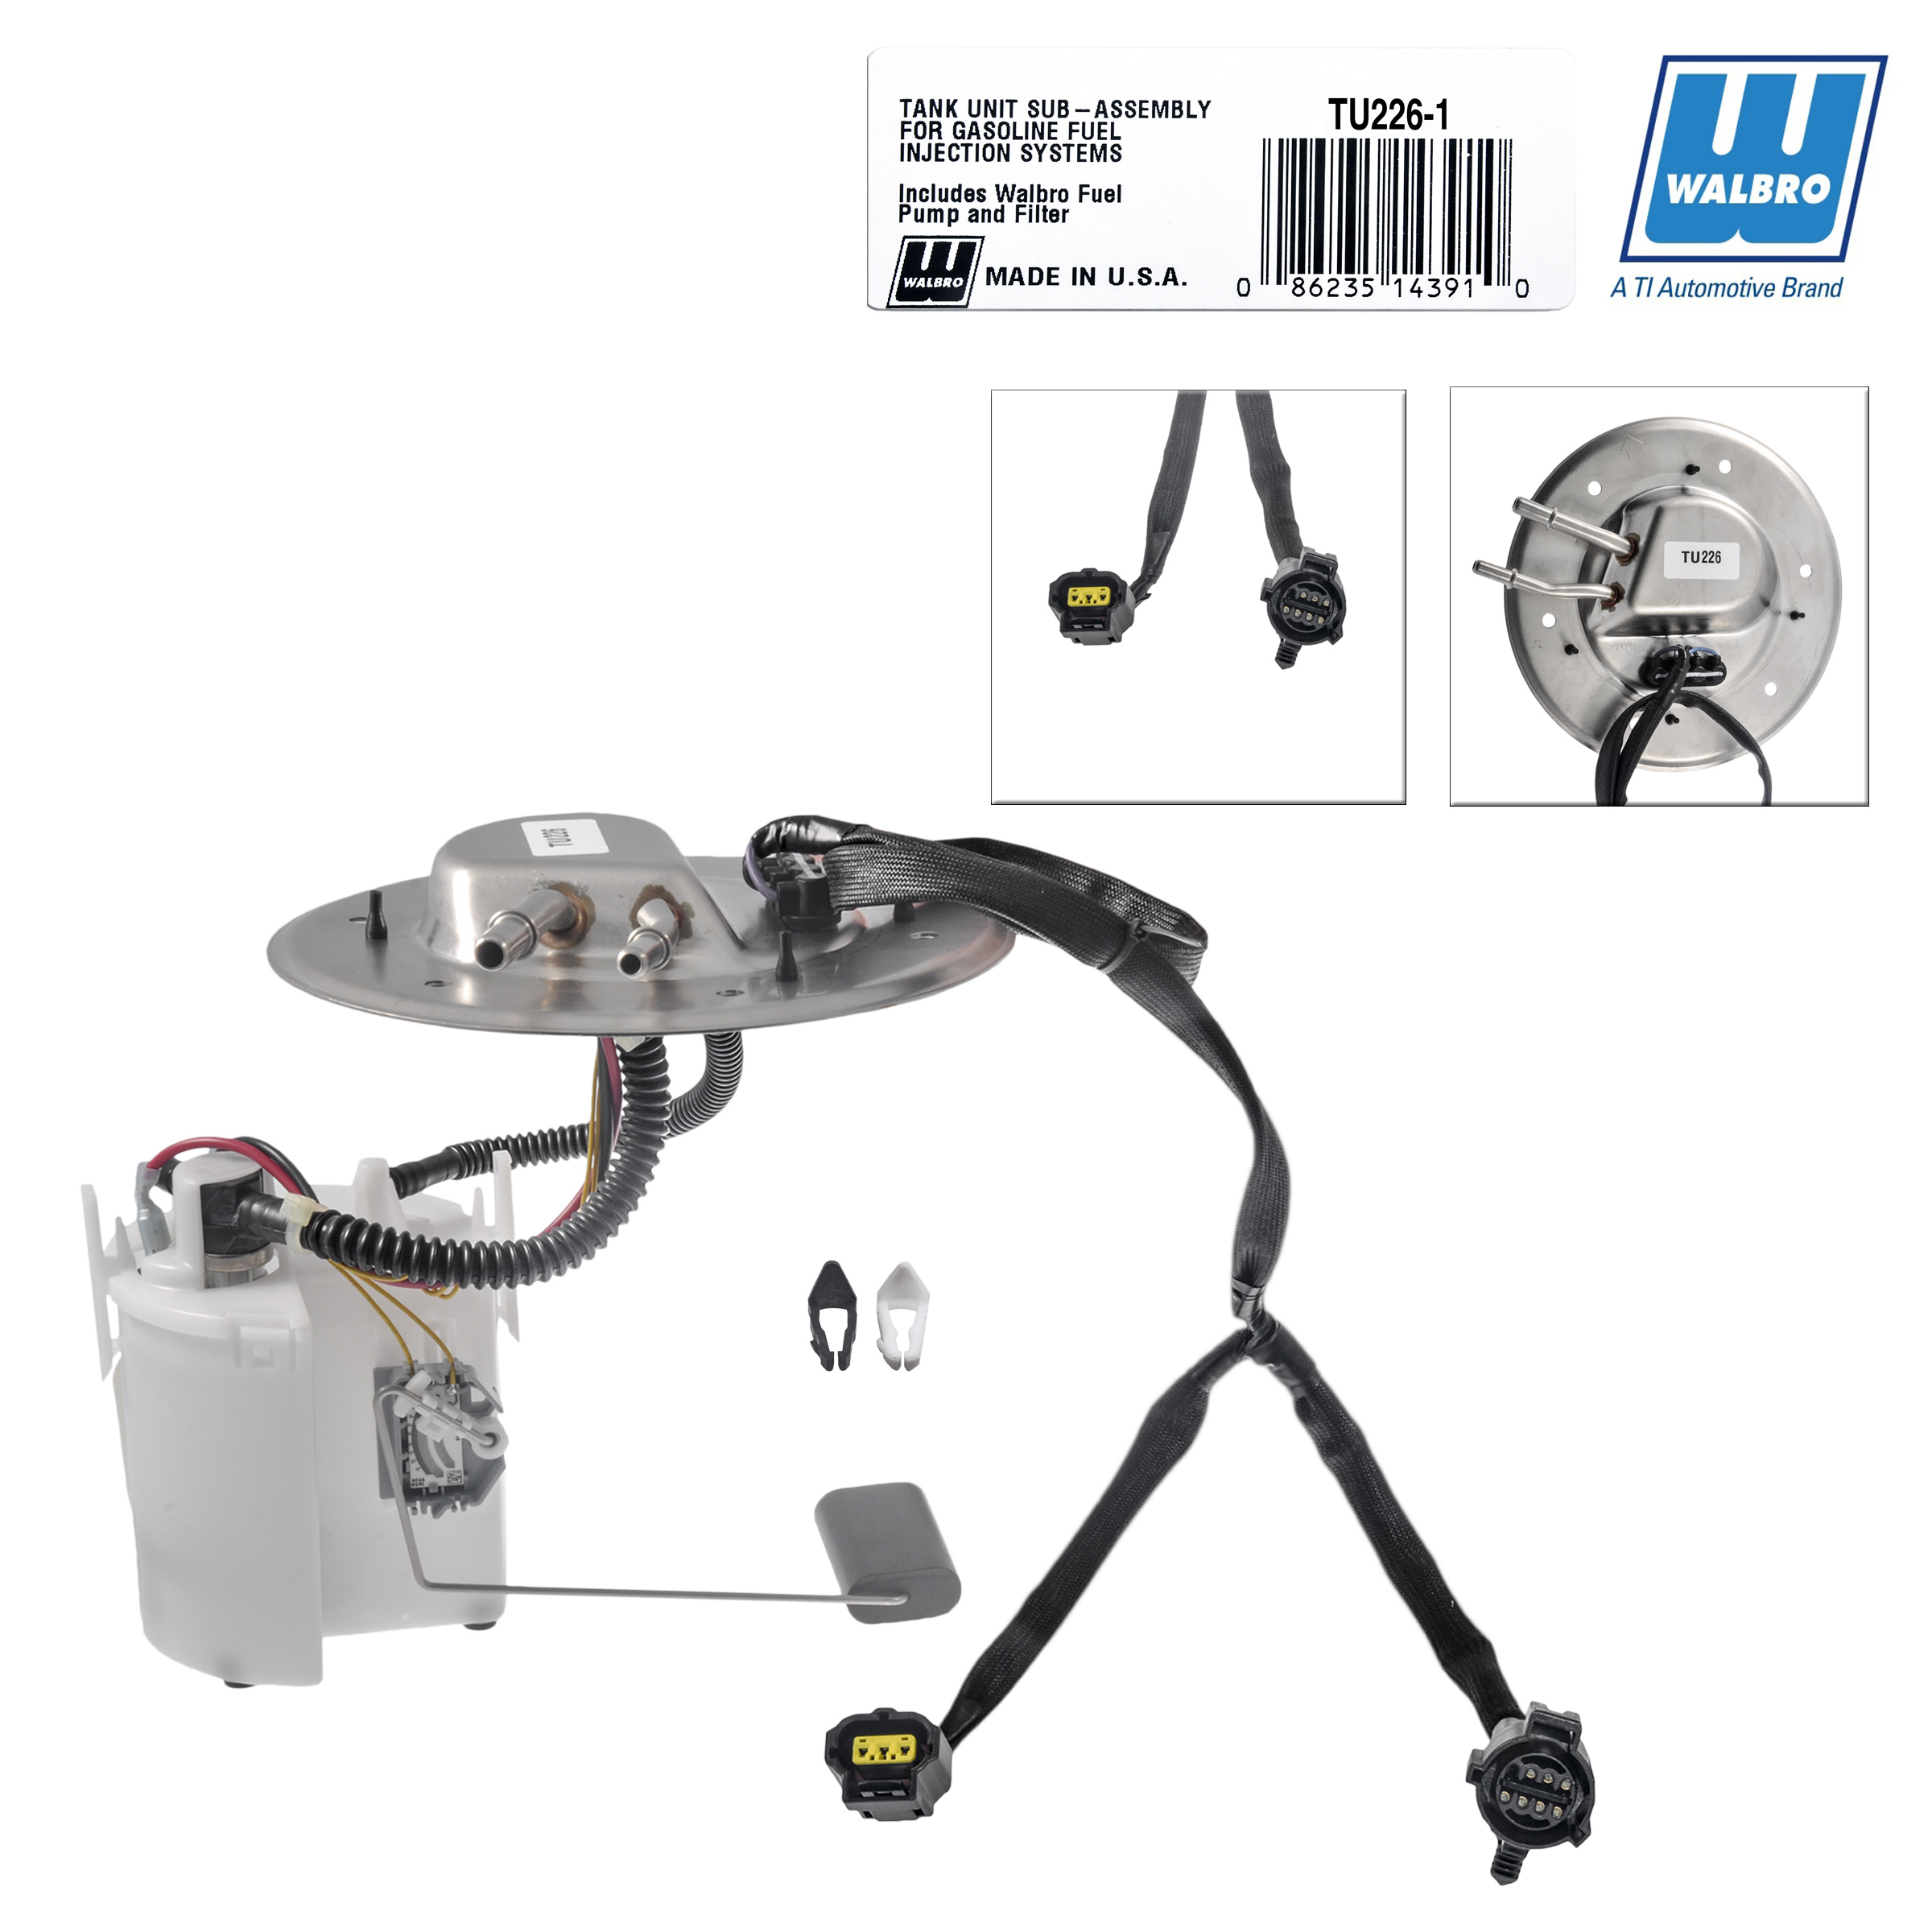 New High Performance Walbro Fuel Module Assembly TU226 Car & Truck Air Intake & Fuel Delivery Parts Auto Parts and Vehicles